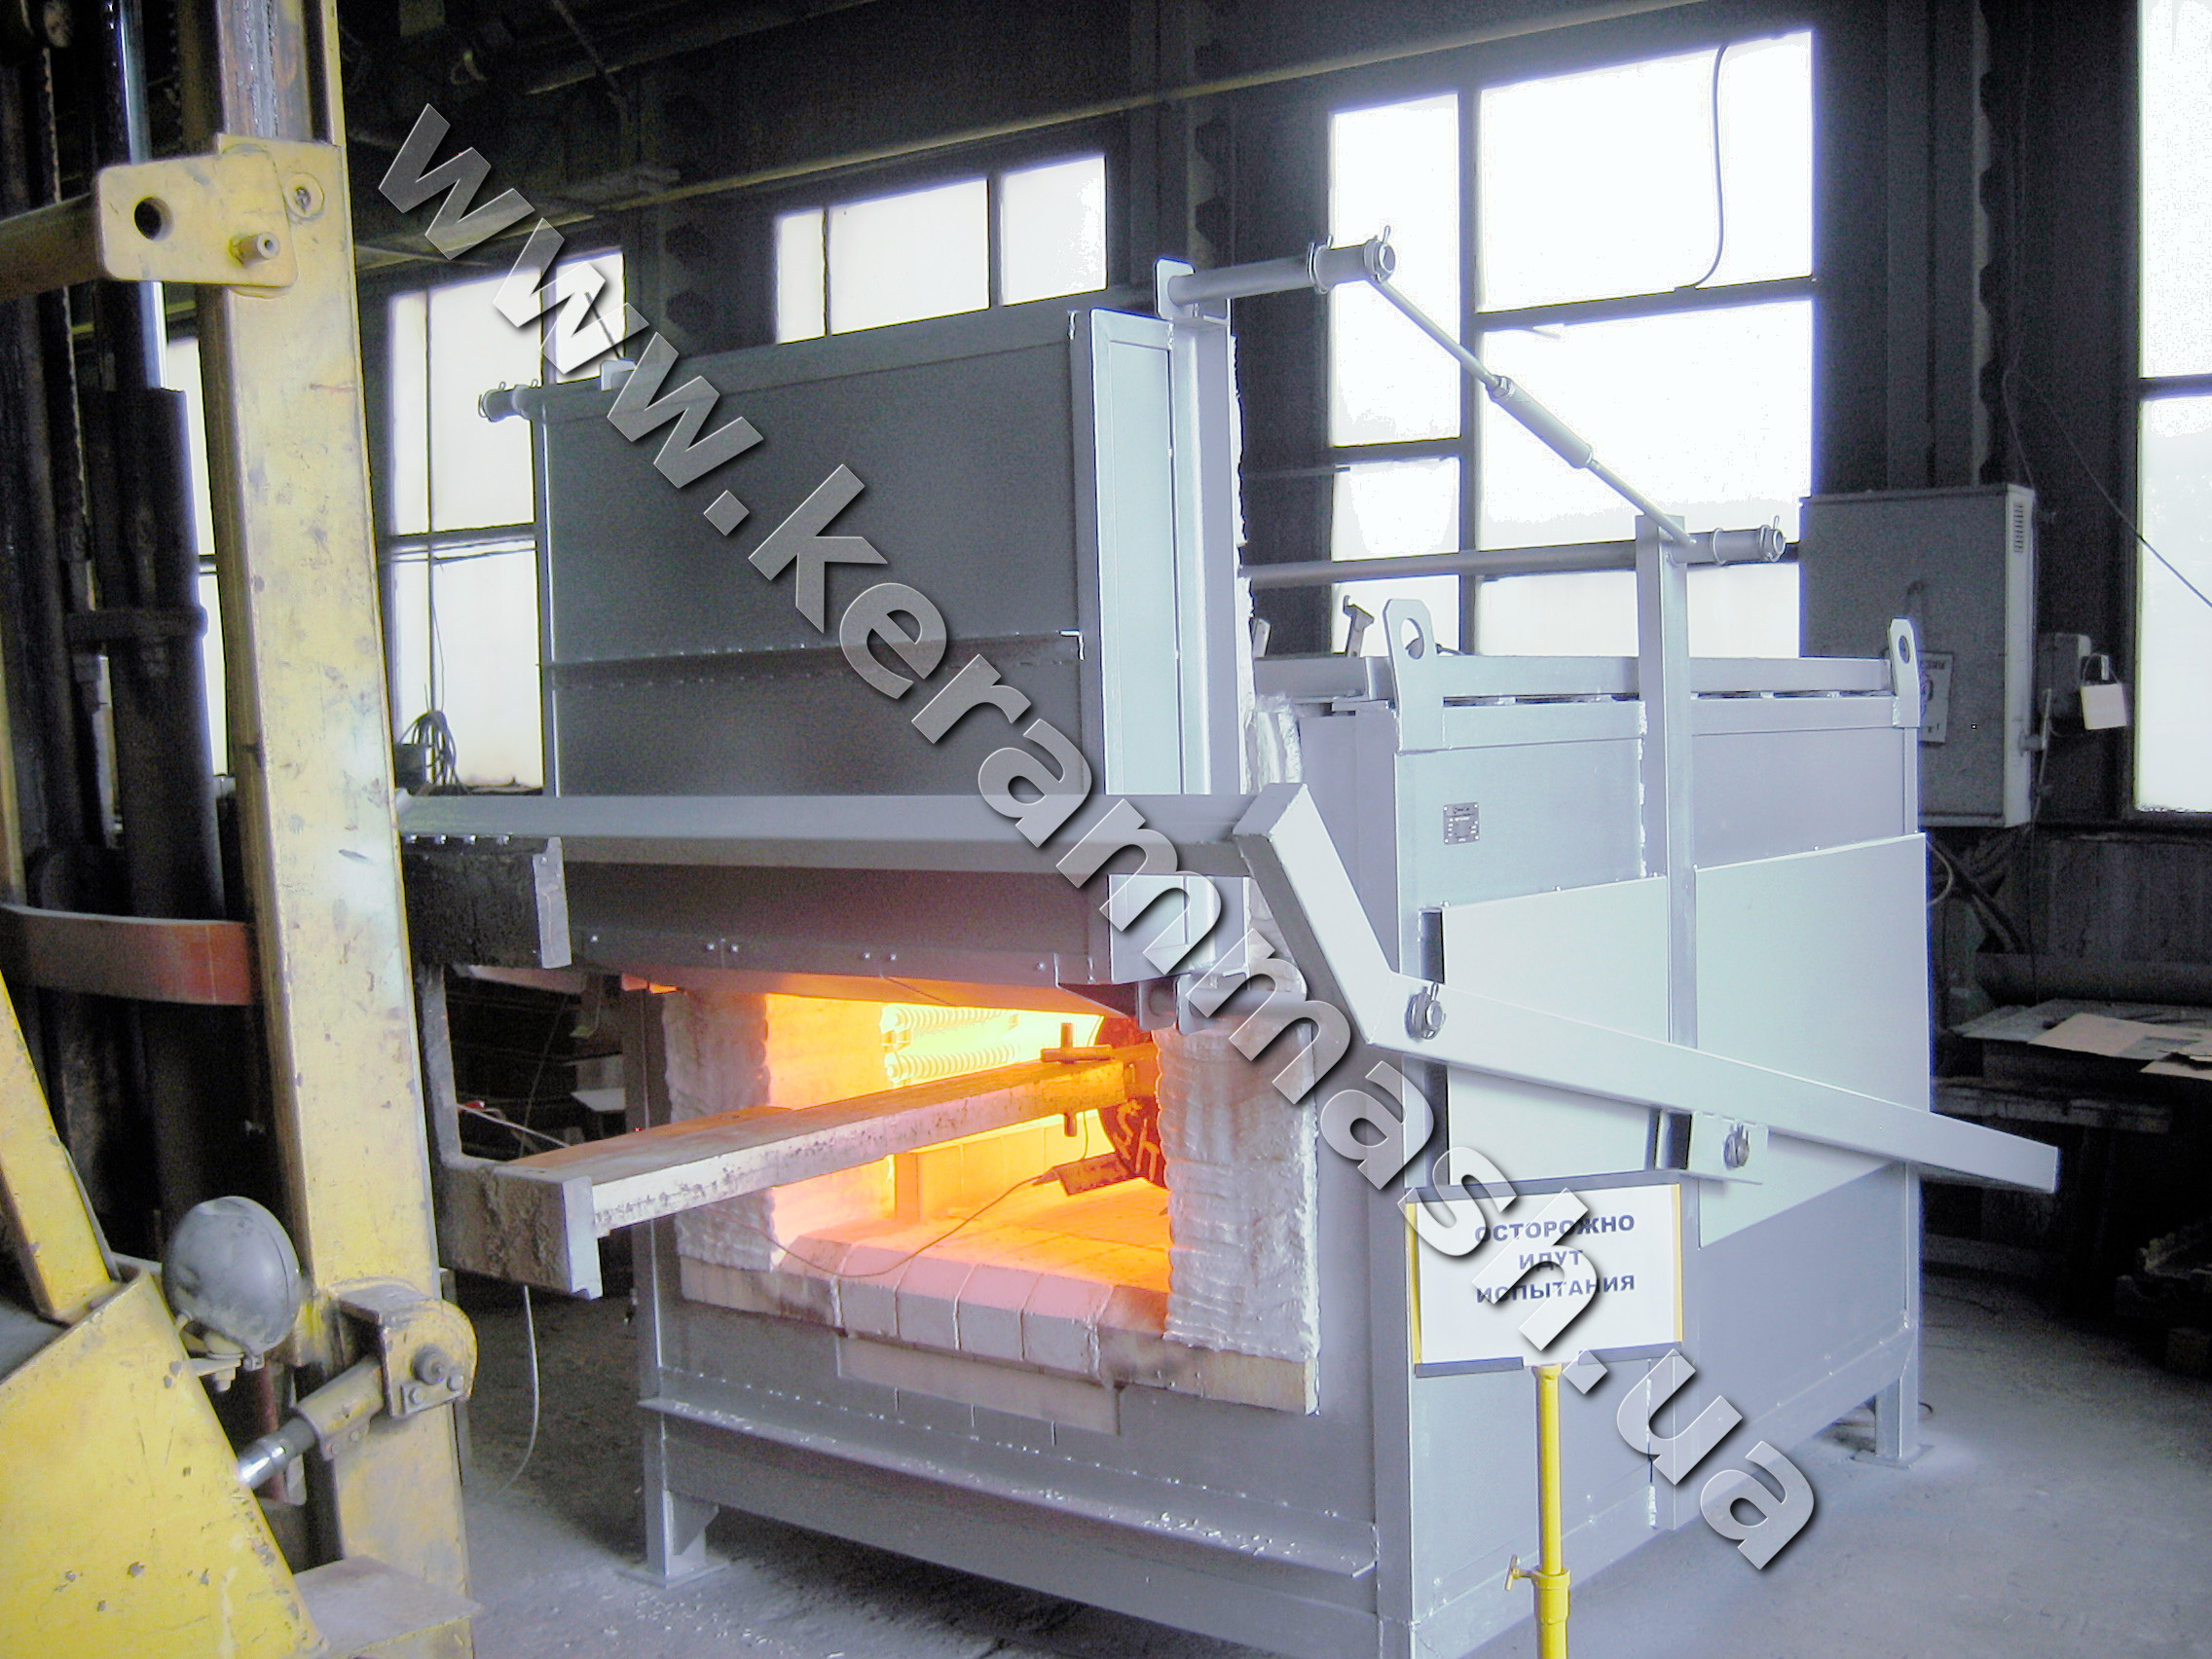 Industrial batch heating furnace electrically heated with stationary hearth